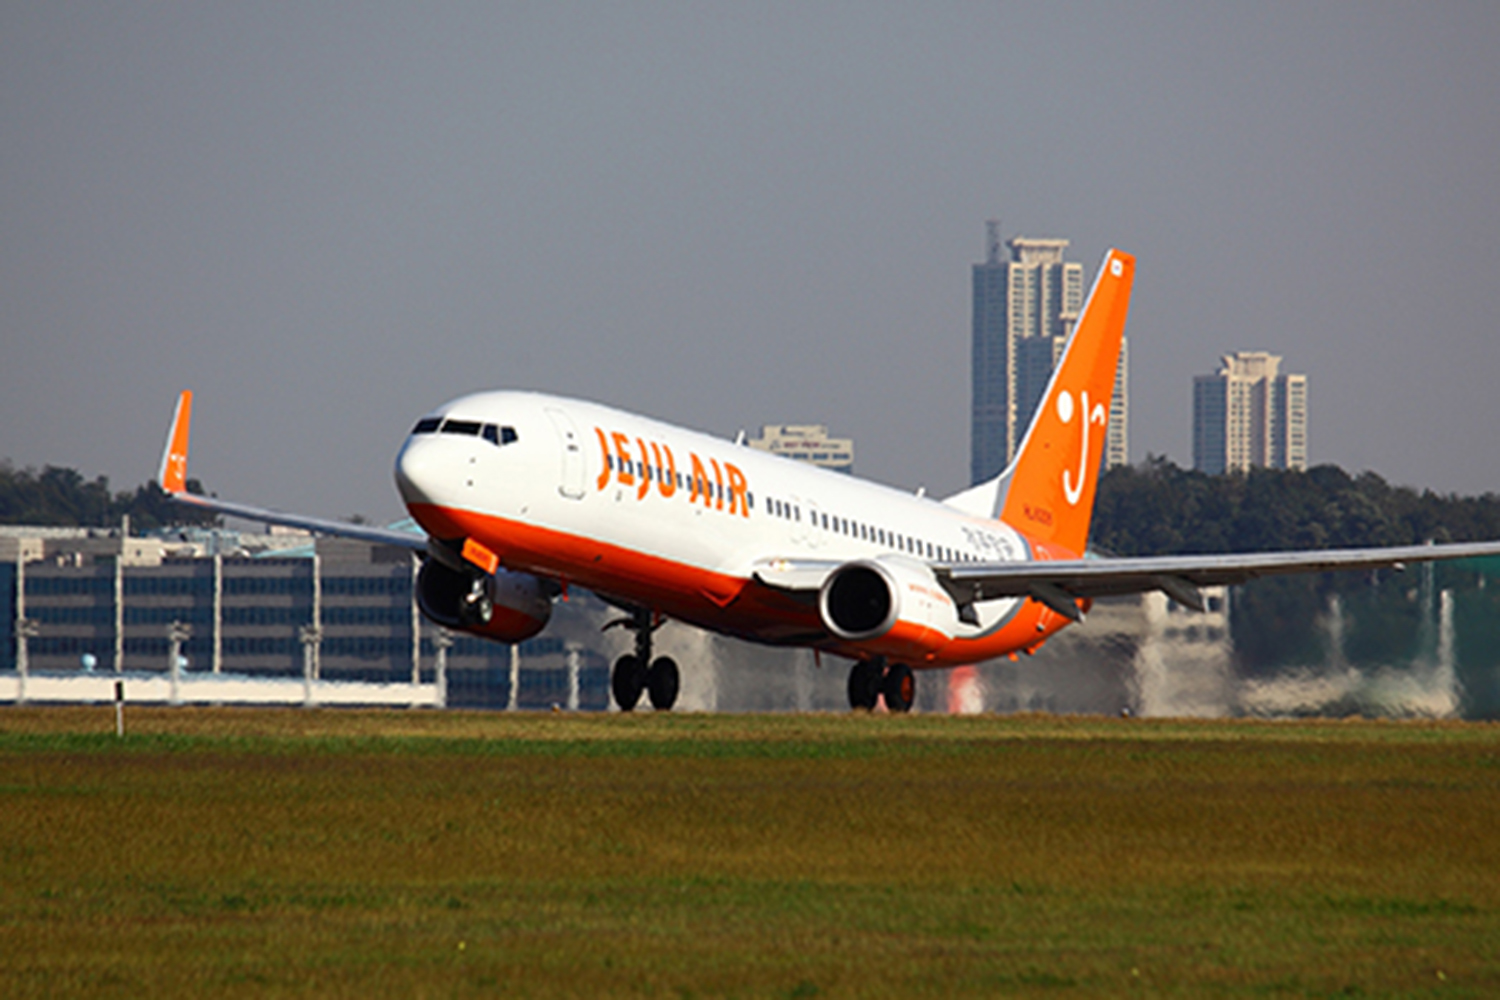 South Korean passengers cite parents failing to stop children from crying the most annoying things during flights, according to a Jueju Air survey.